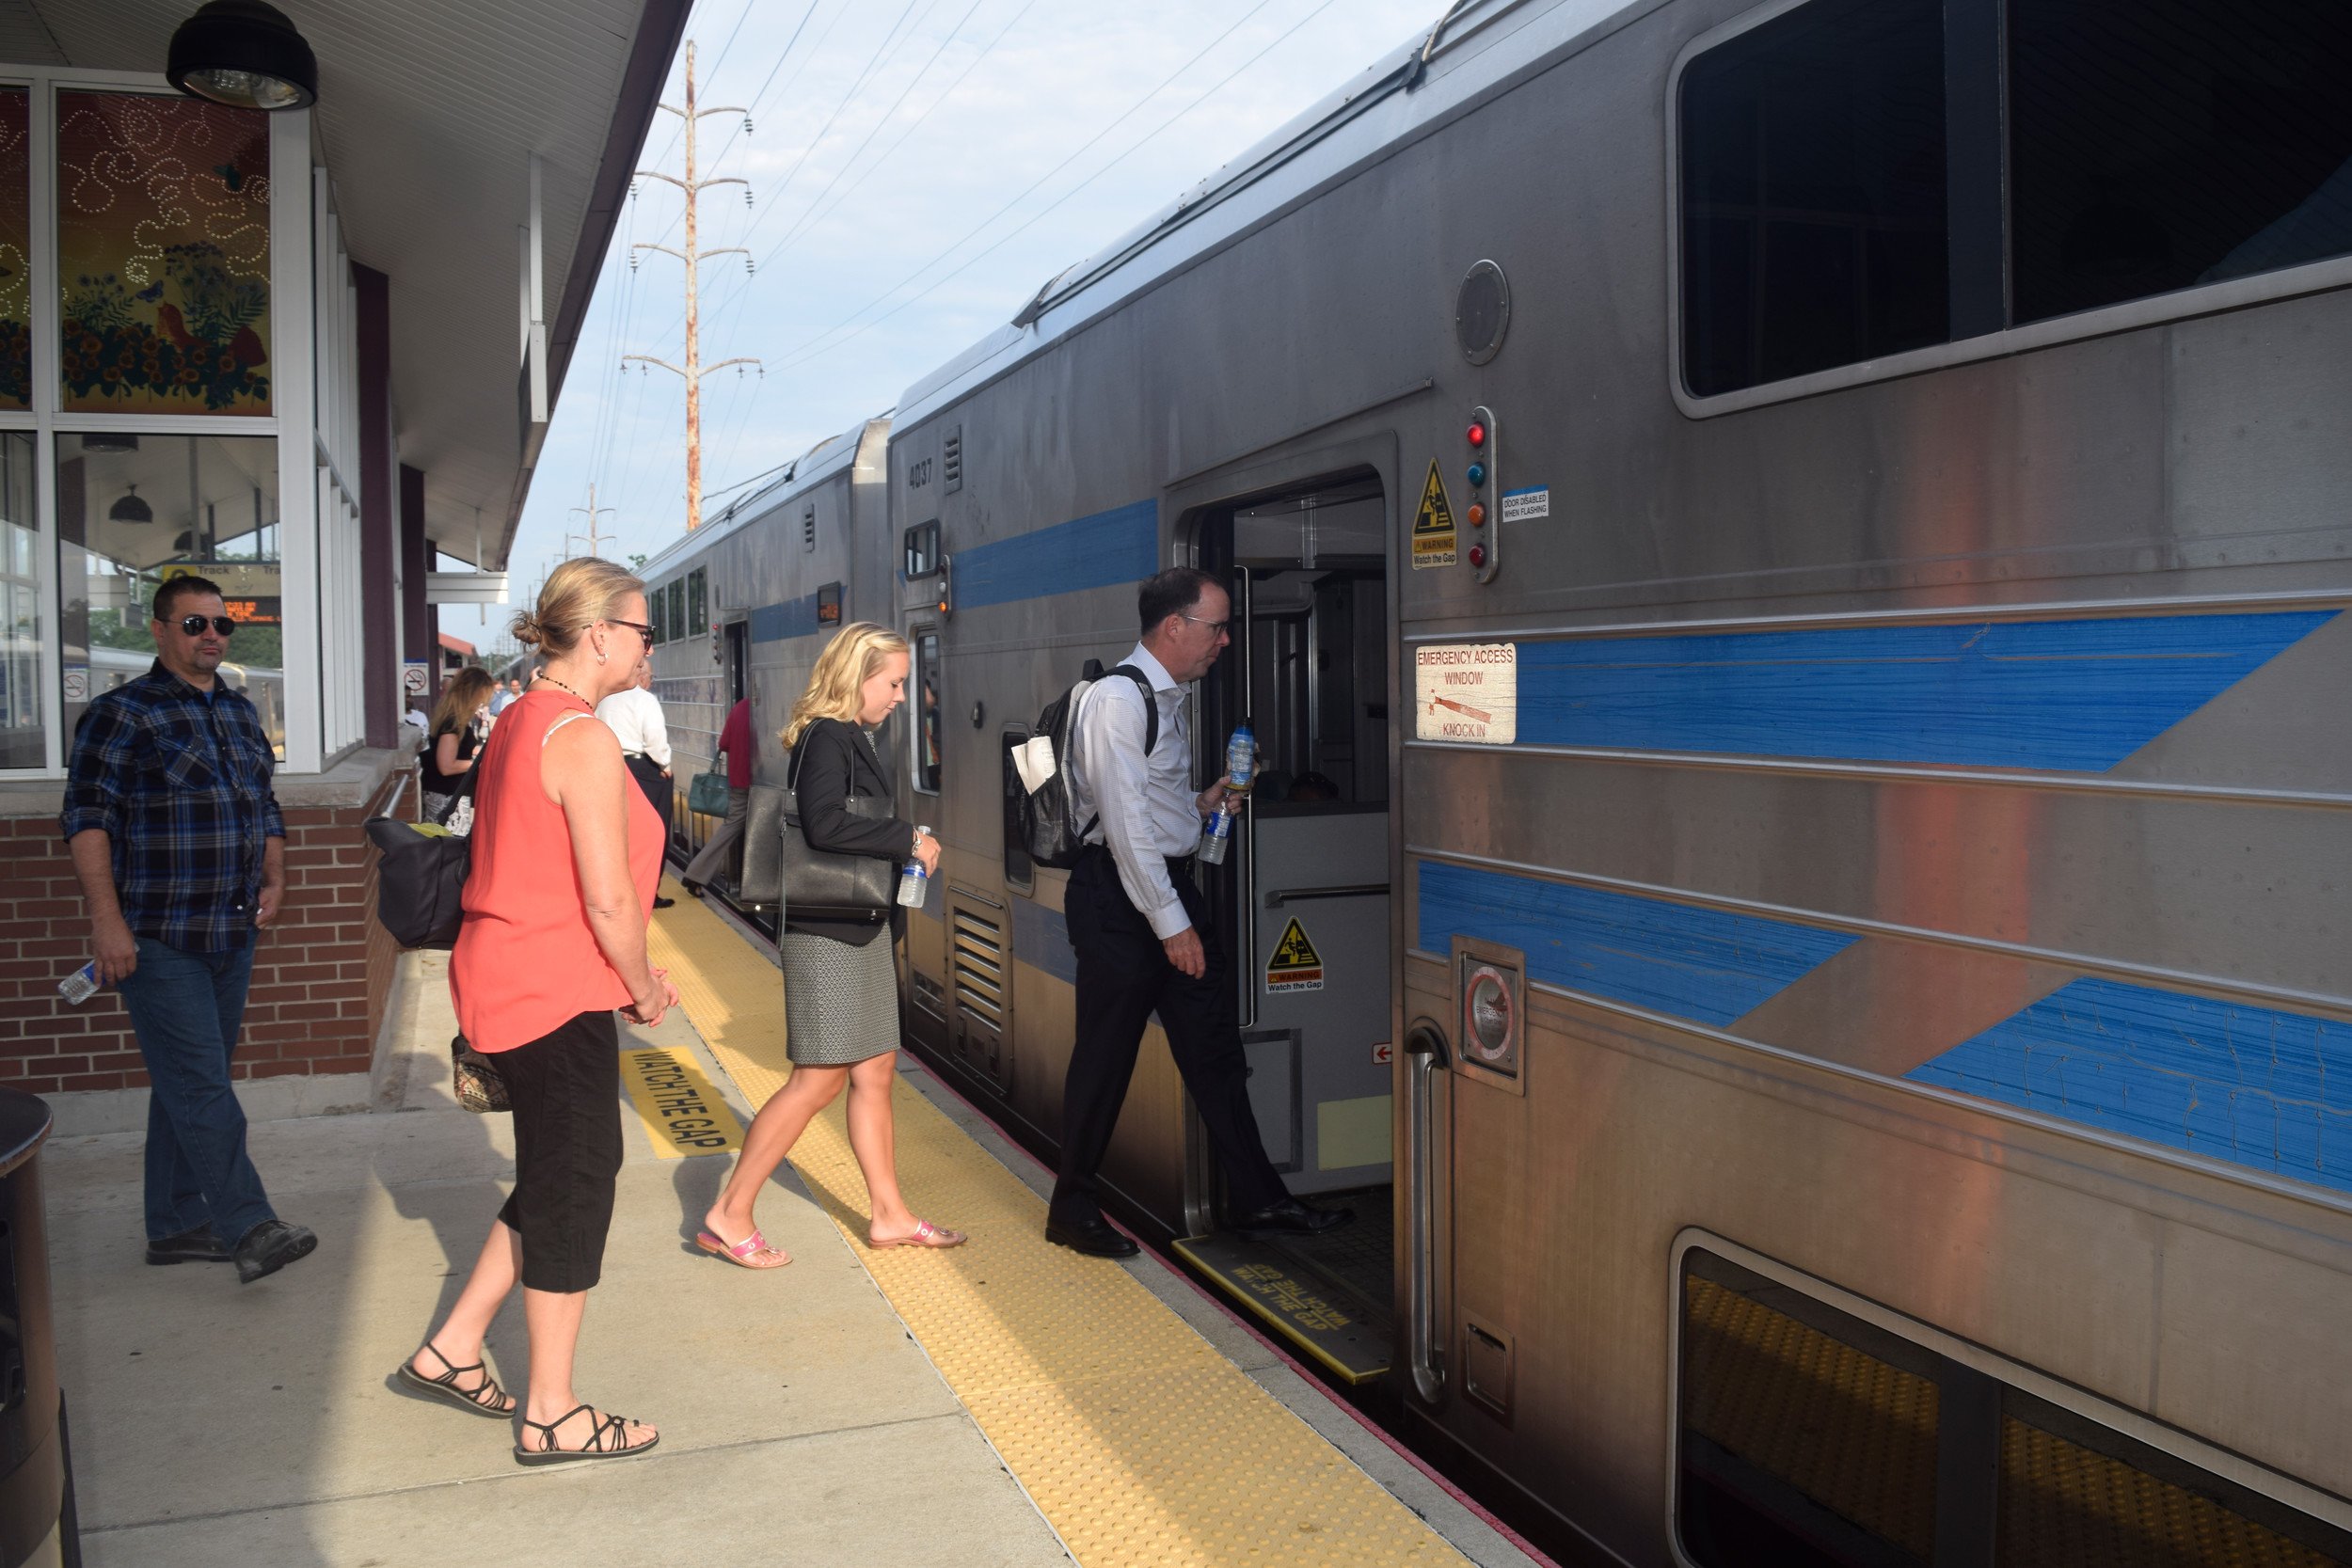 At the Seaford train station last week, commuters said that Long Island Rail Road trains have arrived on time since schedules changed.